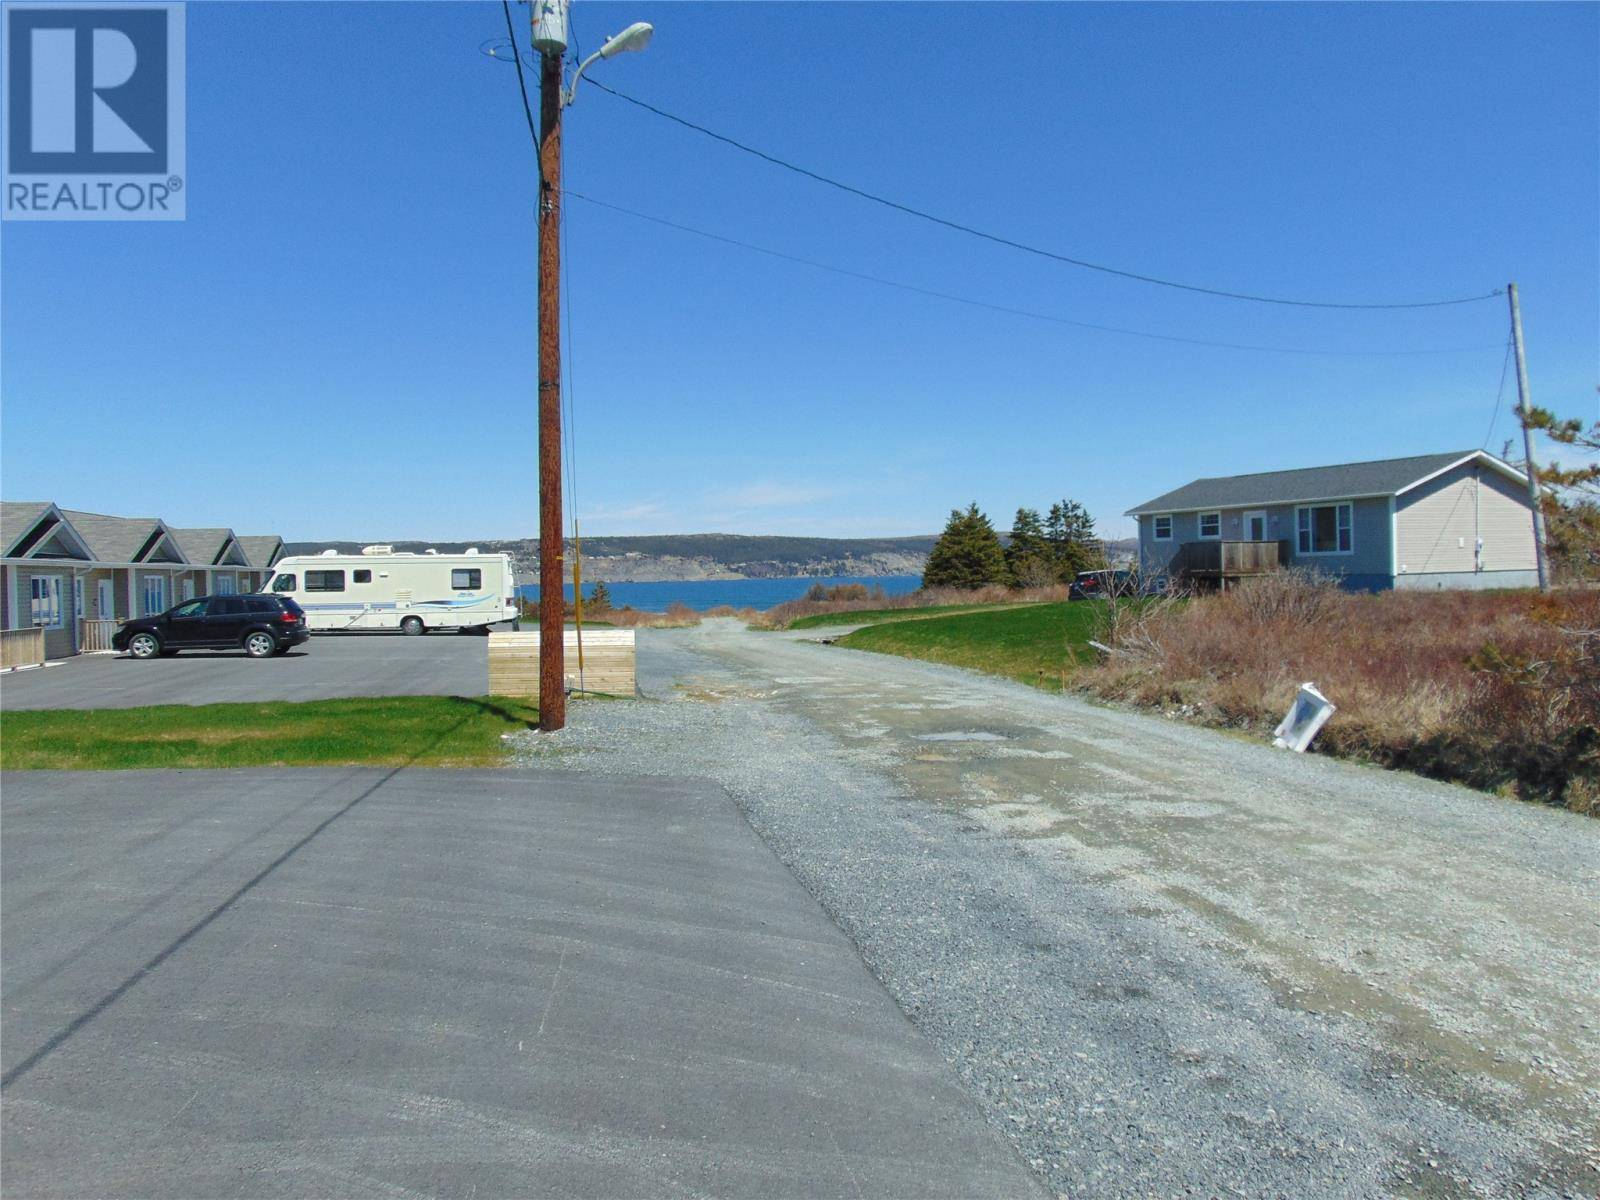 Residential property for sale at 6 Bears Cove Bay Roberts Newfoundland - MLS: 1156937